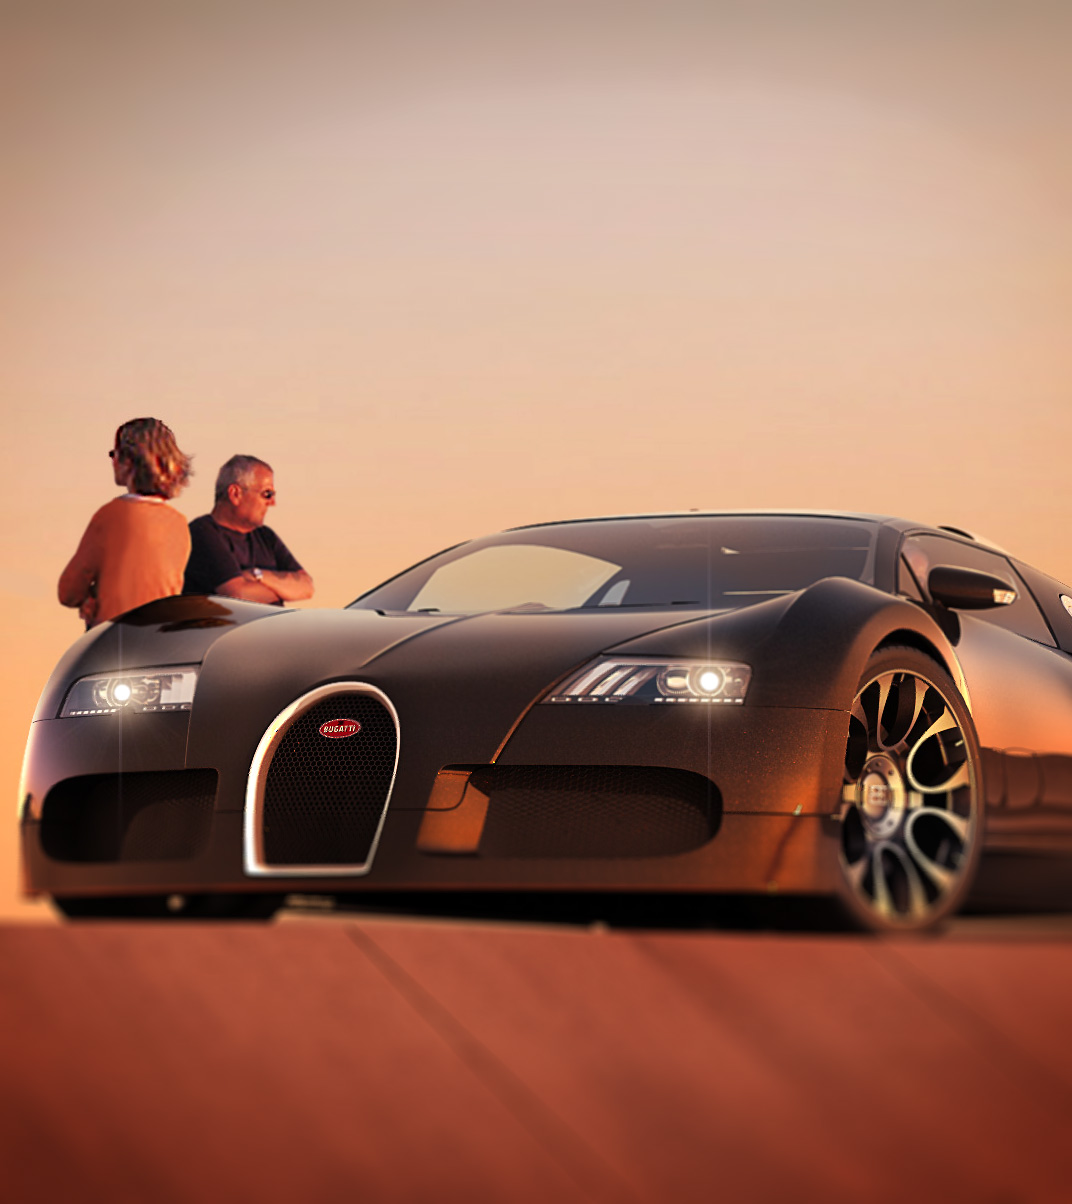 Bugatti Veyron- People Integration